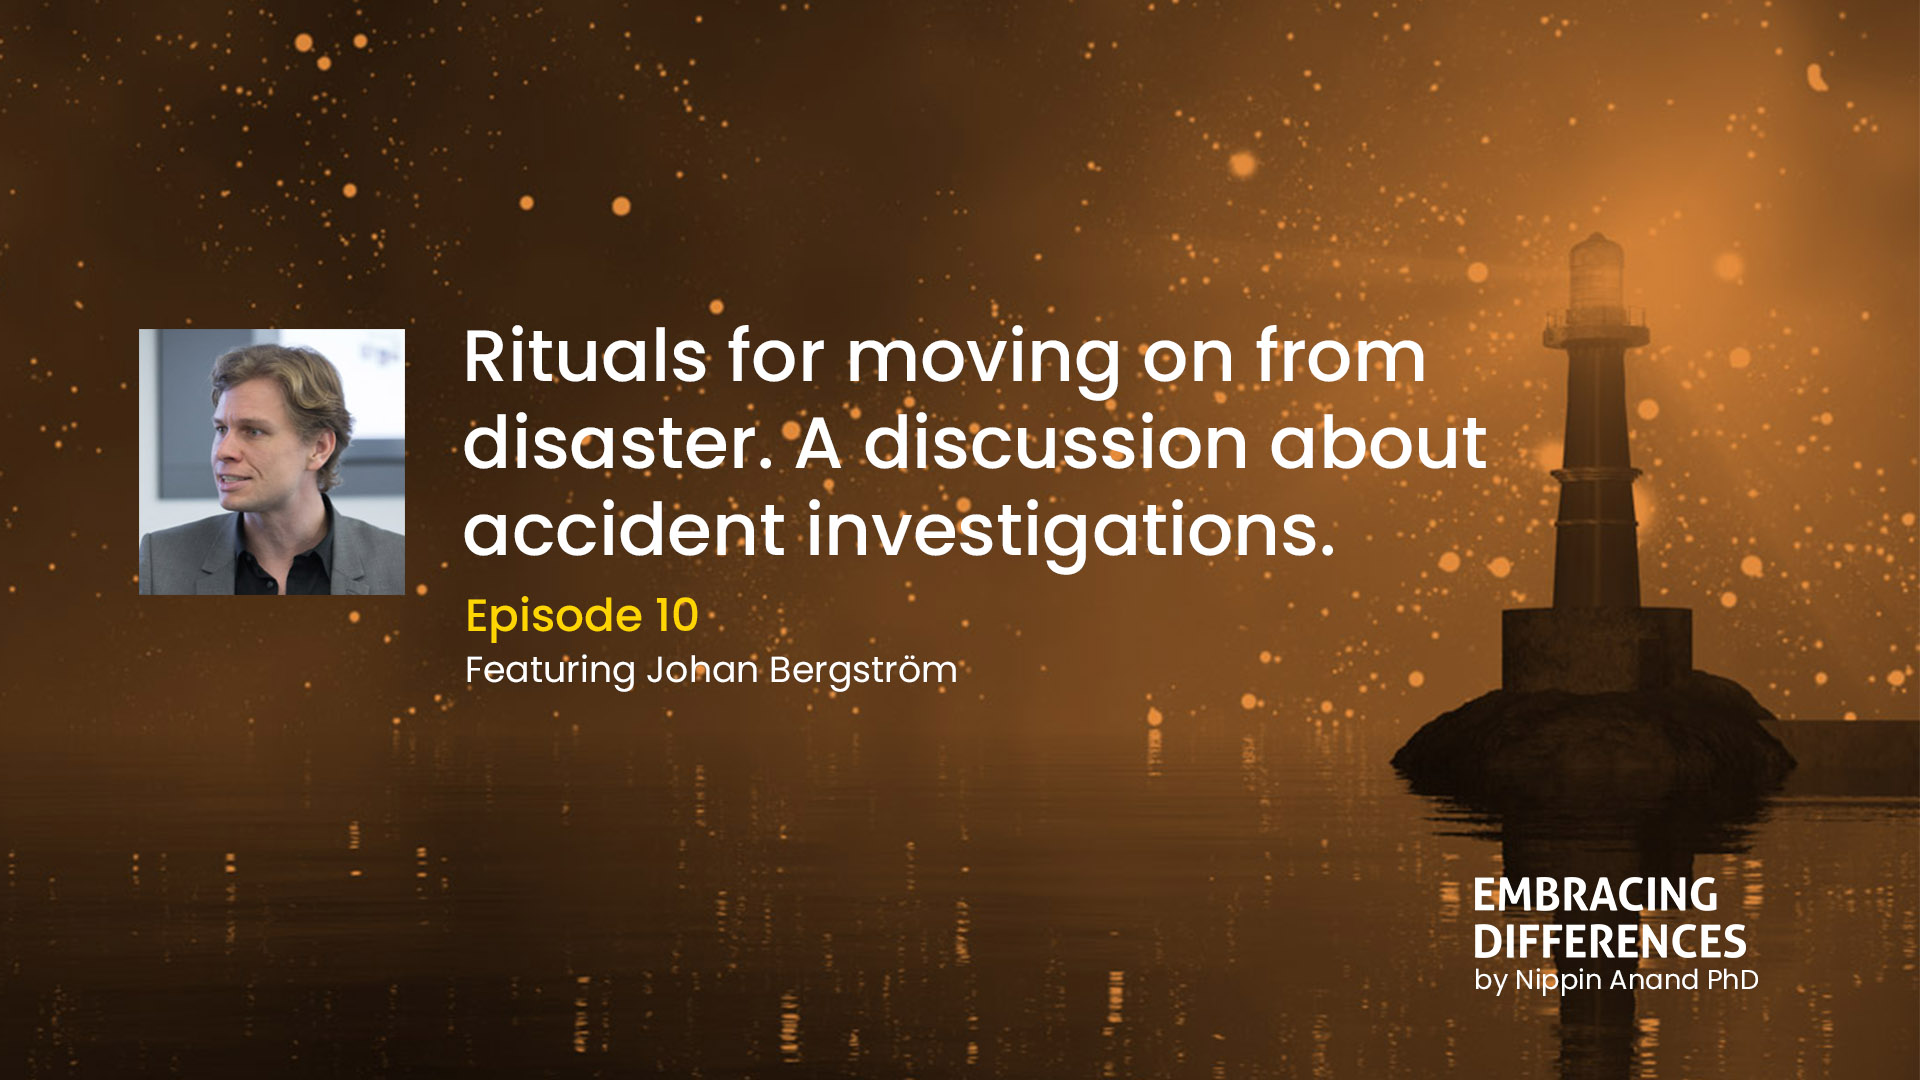 Rituals for moving on from disaster. A discussion about accident investigations.